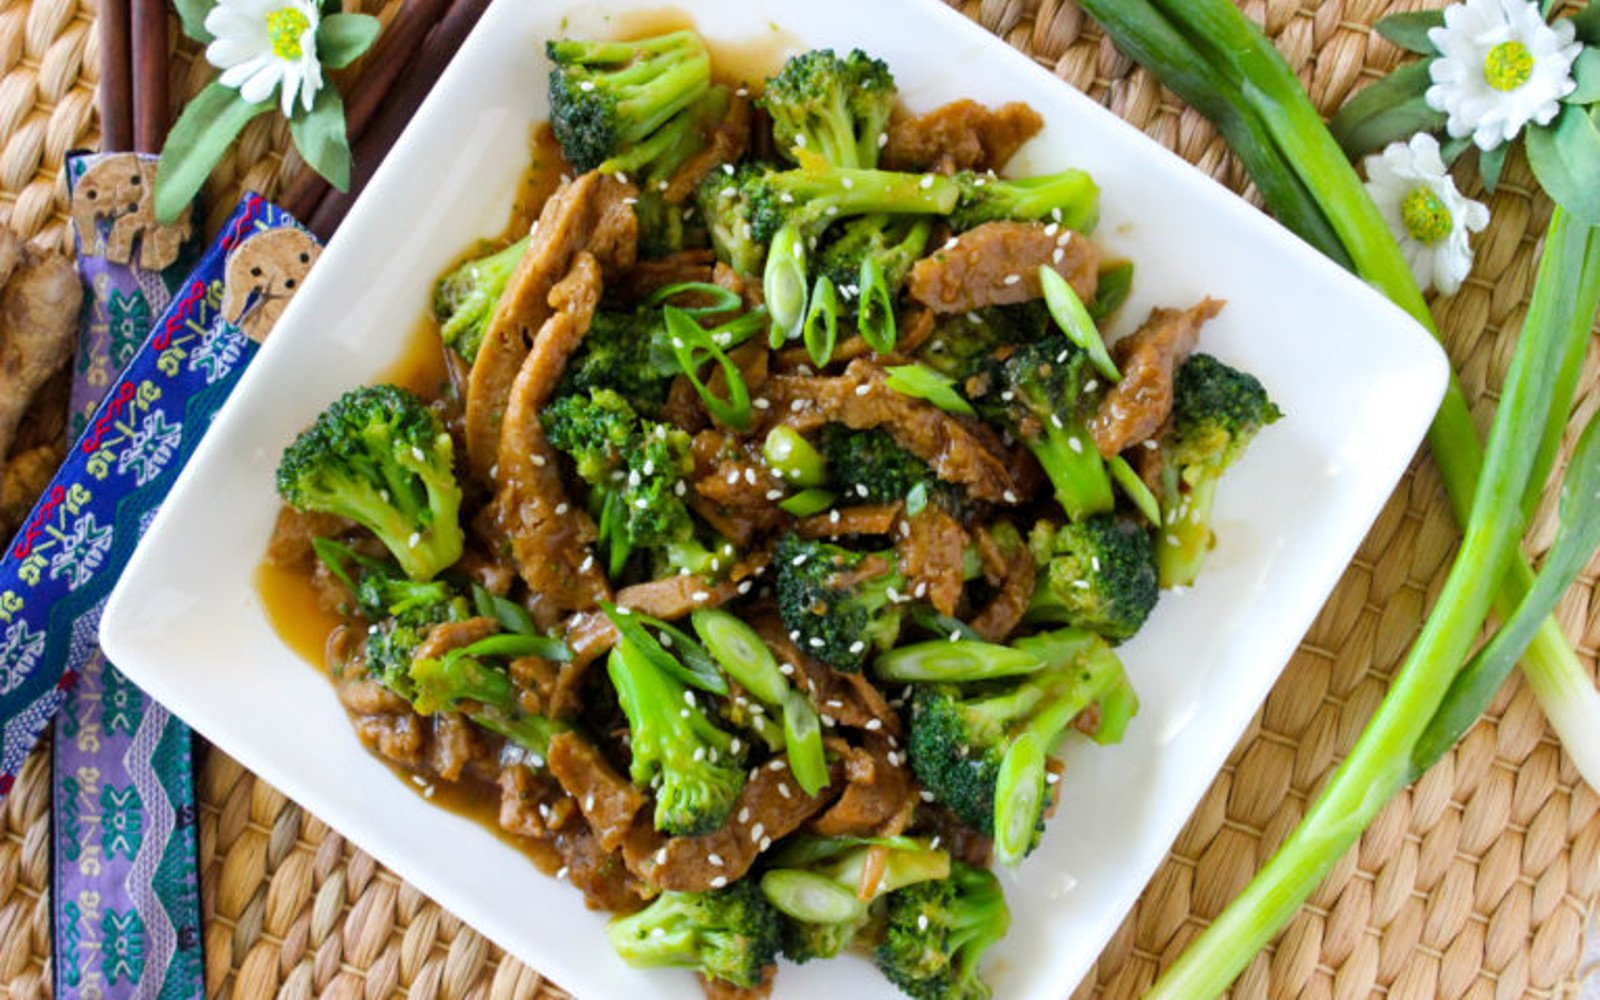 Vegan 10-Minute Seitan 'Beef' and Broccoli